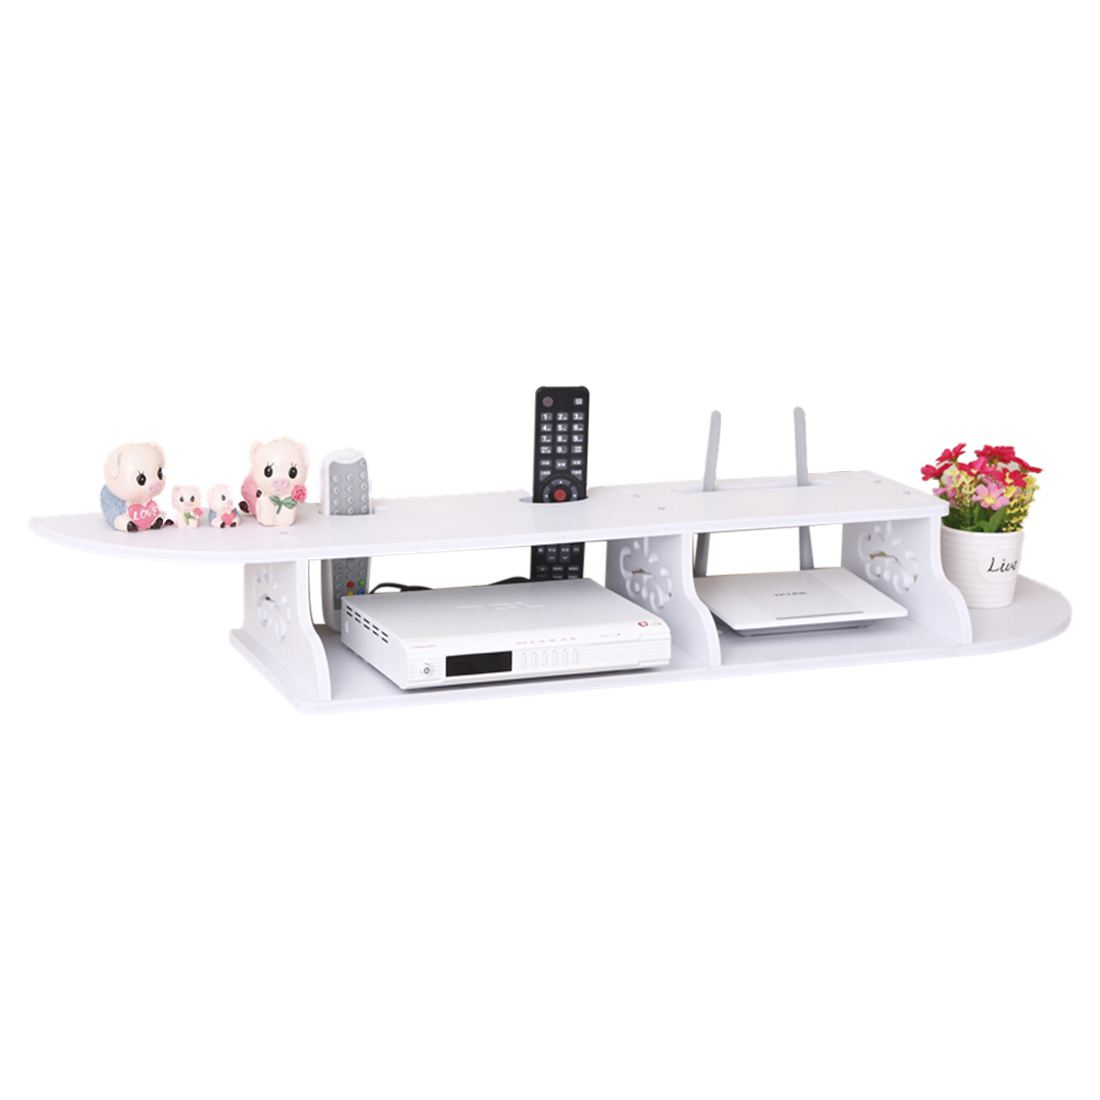 Hollow Carved 2 Tier Floating Wall Shelves Skybox CD DVD Bookcase Storage Unit- white блокада 2 dvd